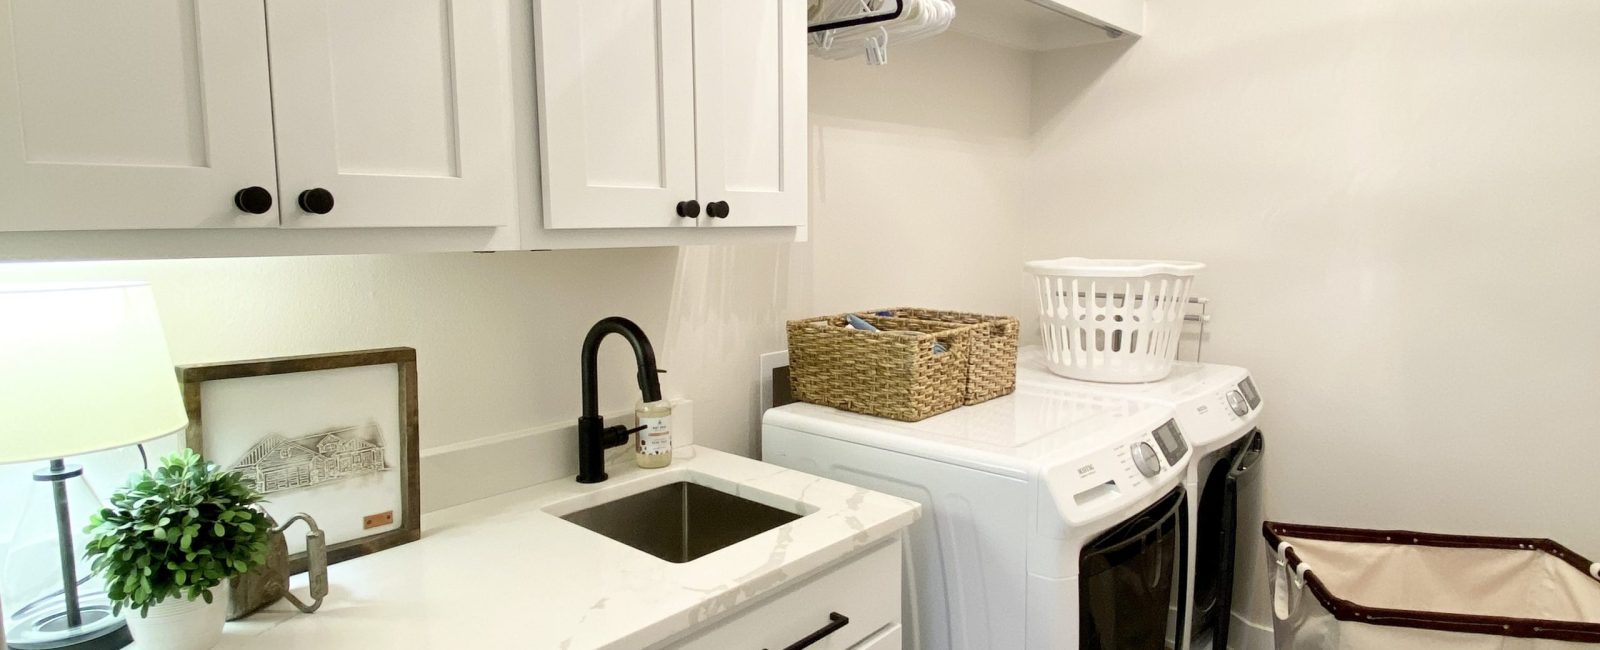 Why Does My Washing Machine Smell?  5 Simple Tips to Remove Washer Odor